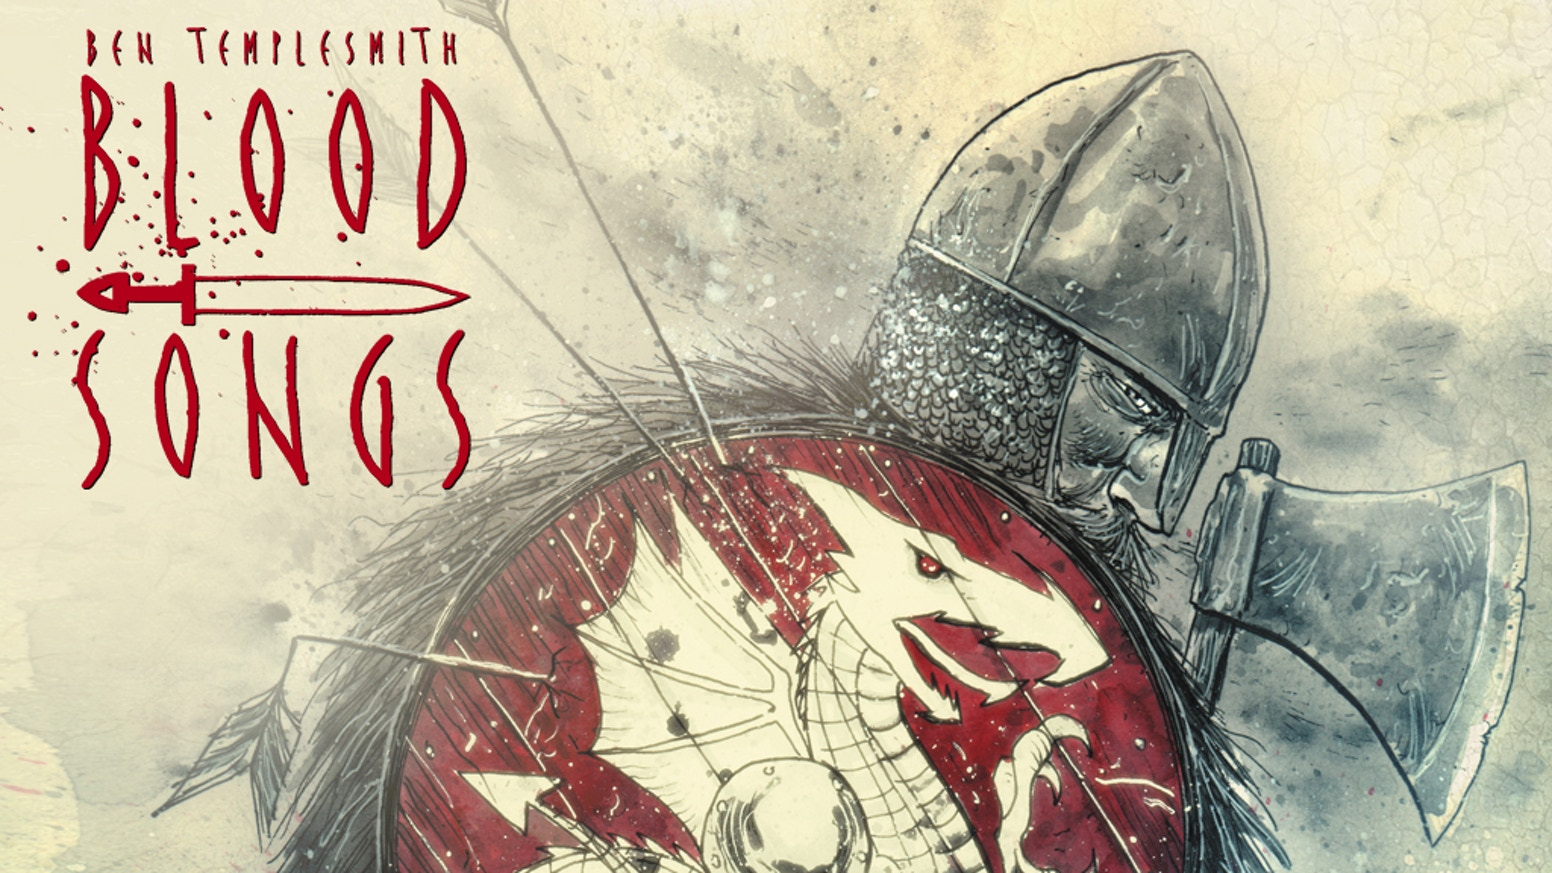 Fire, blood & Vikings! Stories from a time when kingdoms were forged in battle & the old ways still survived.